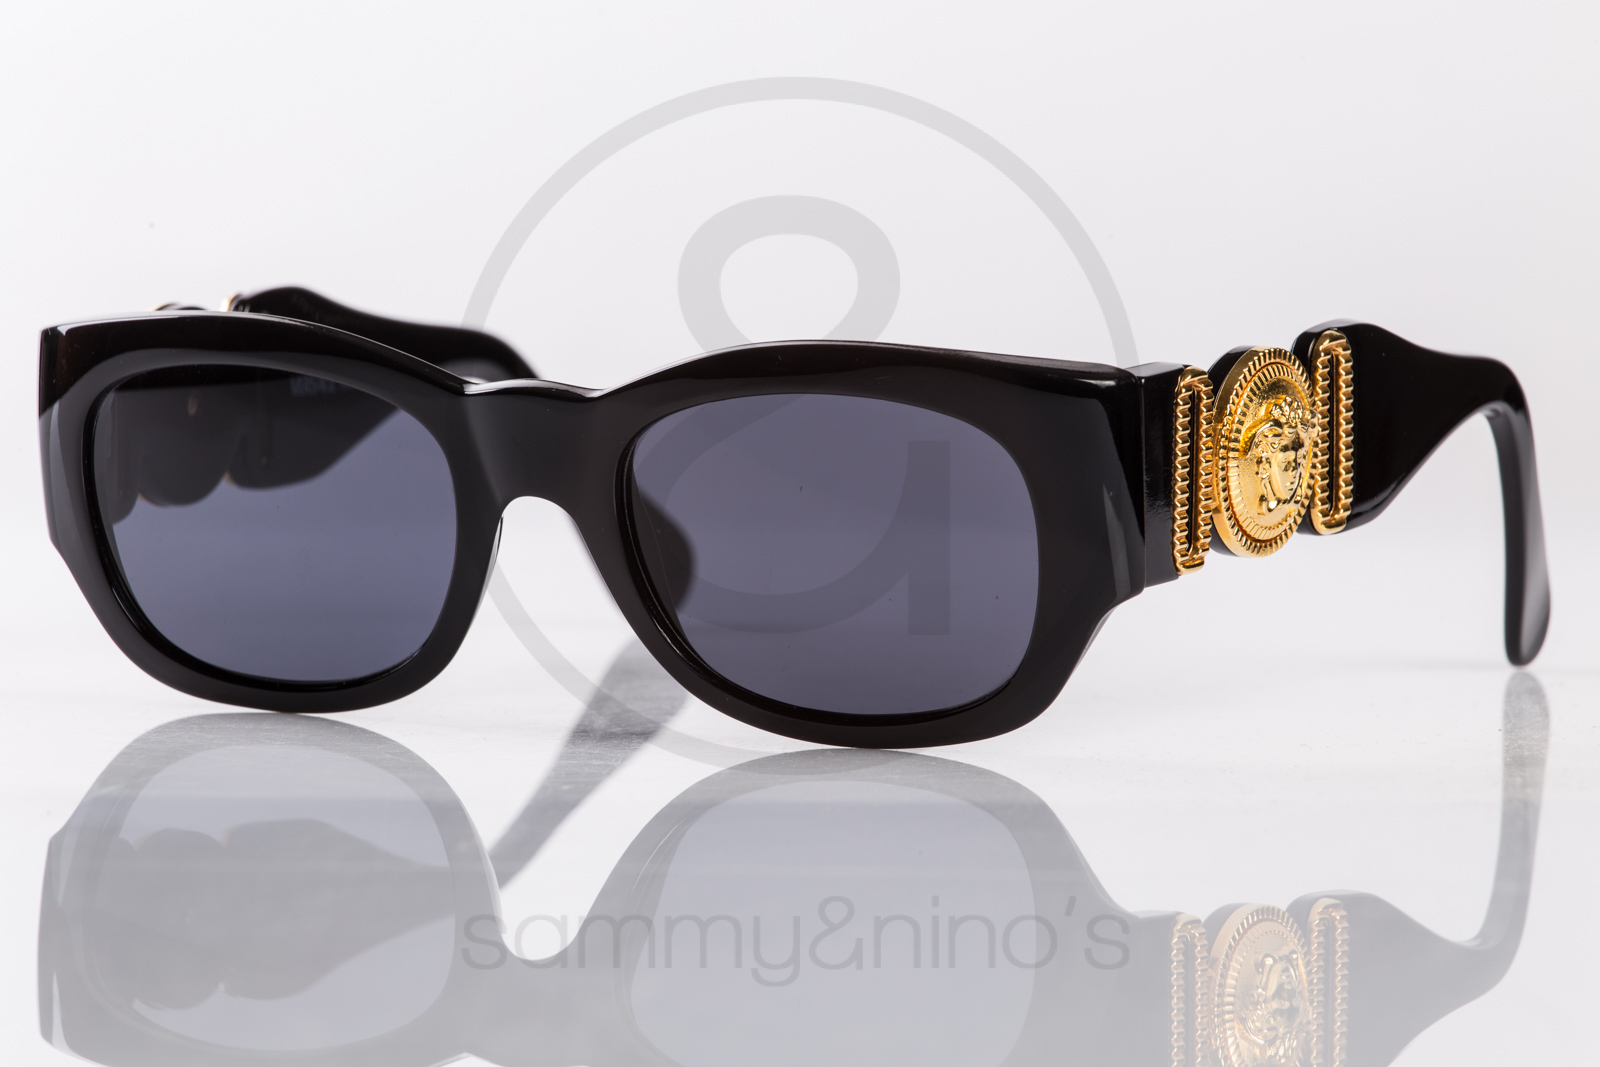 a954d5103a0 Vintage Gianni Versace Sunglasses Replica - Bitterroot Public Library